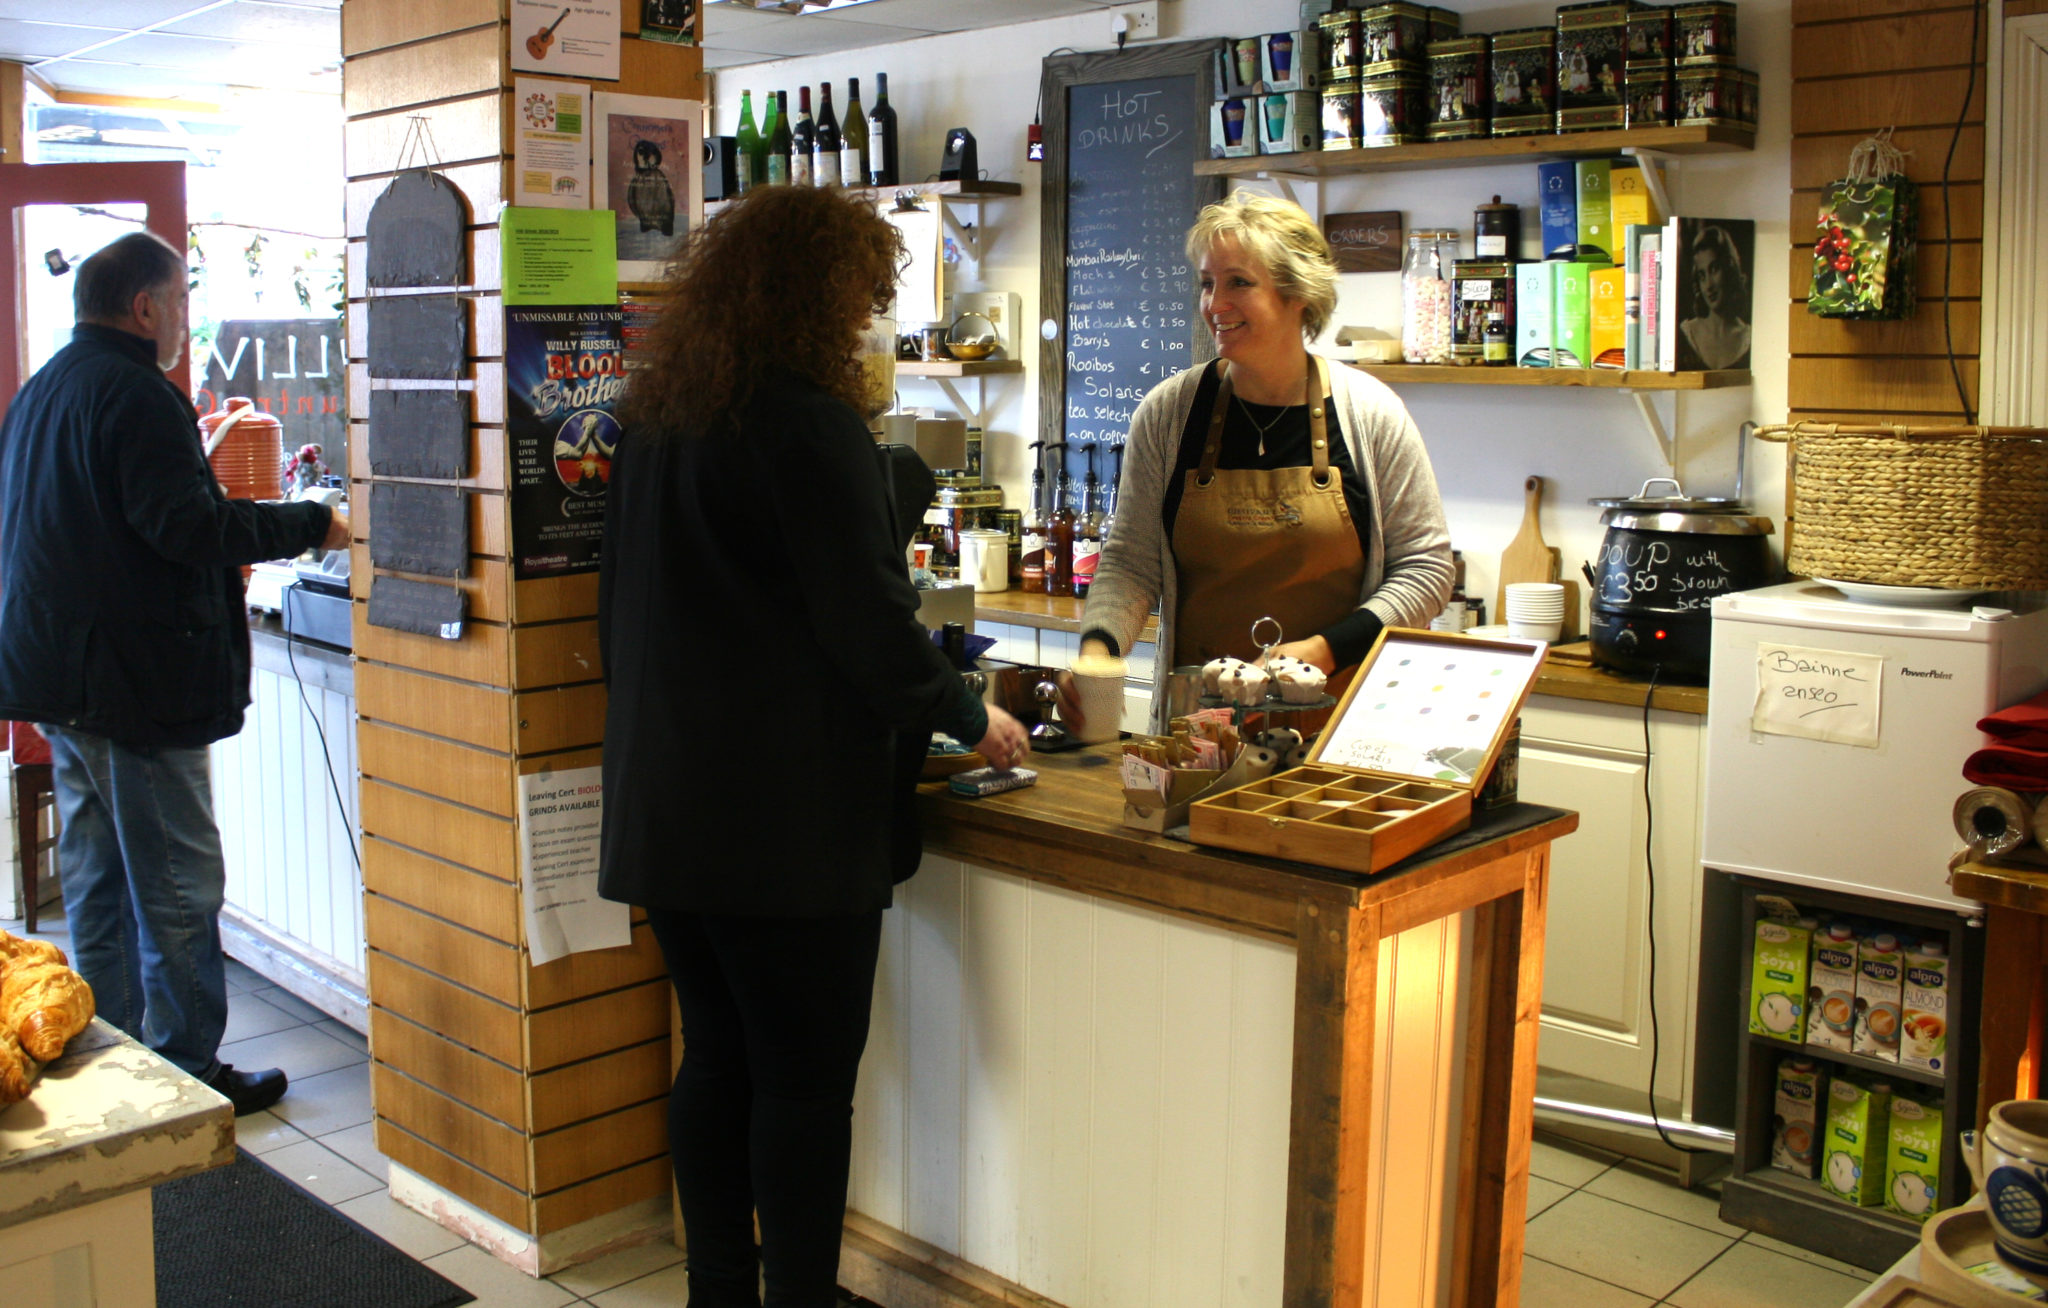 Sullivans Country Grocer is an old style grocer with seriously good coffee